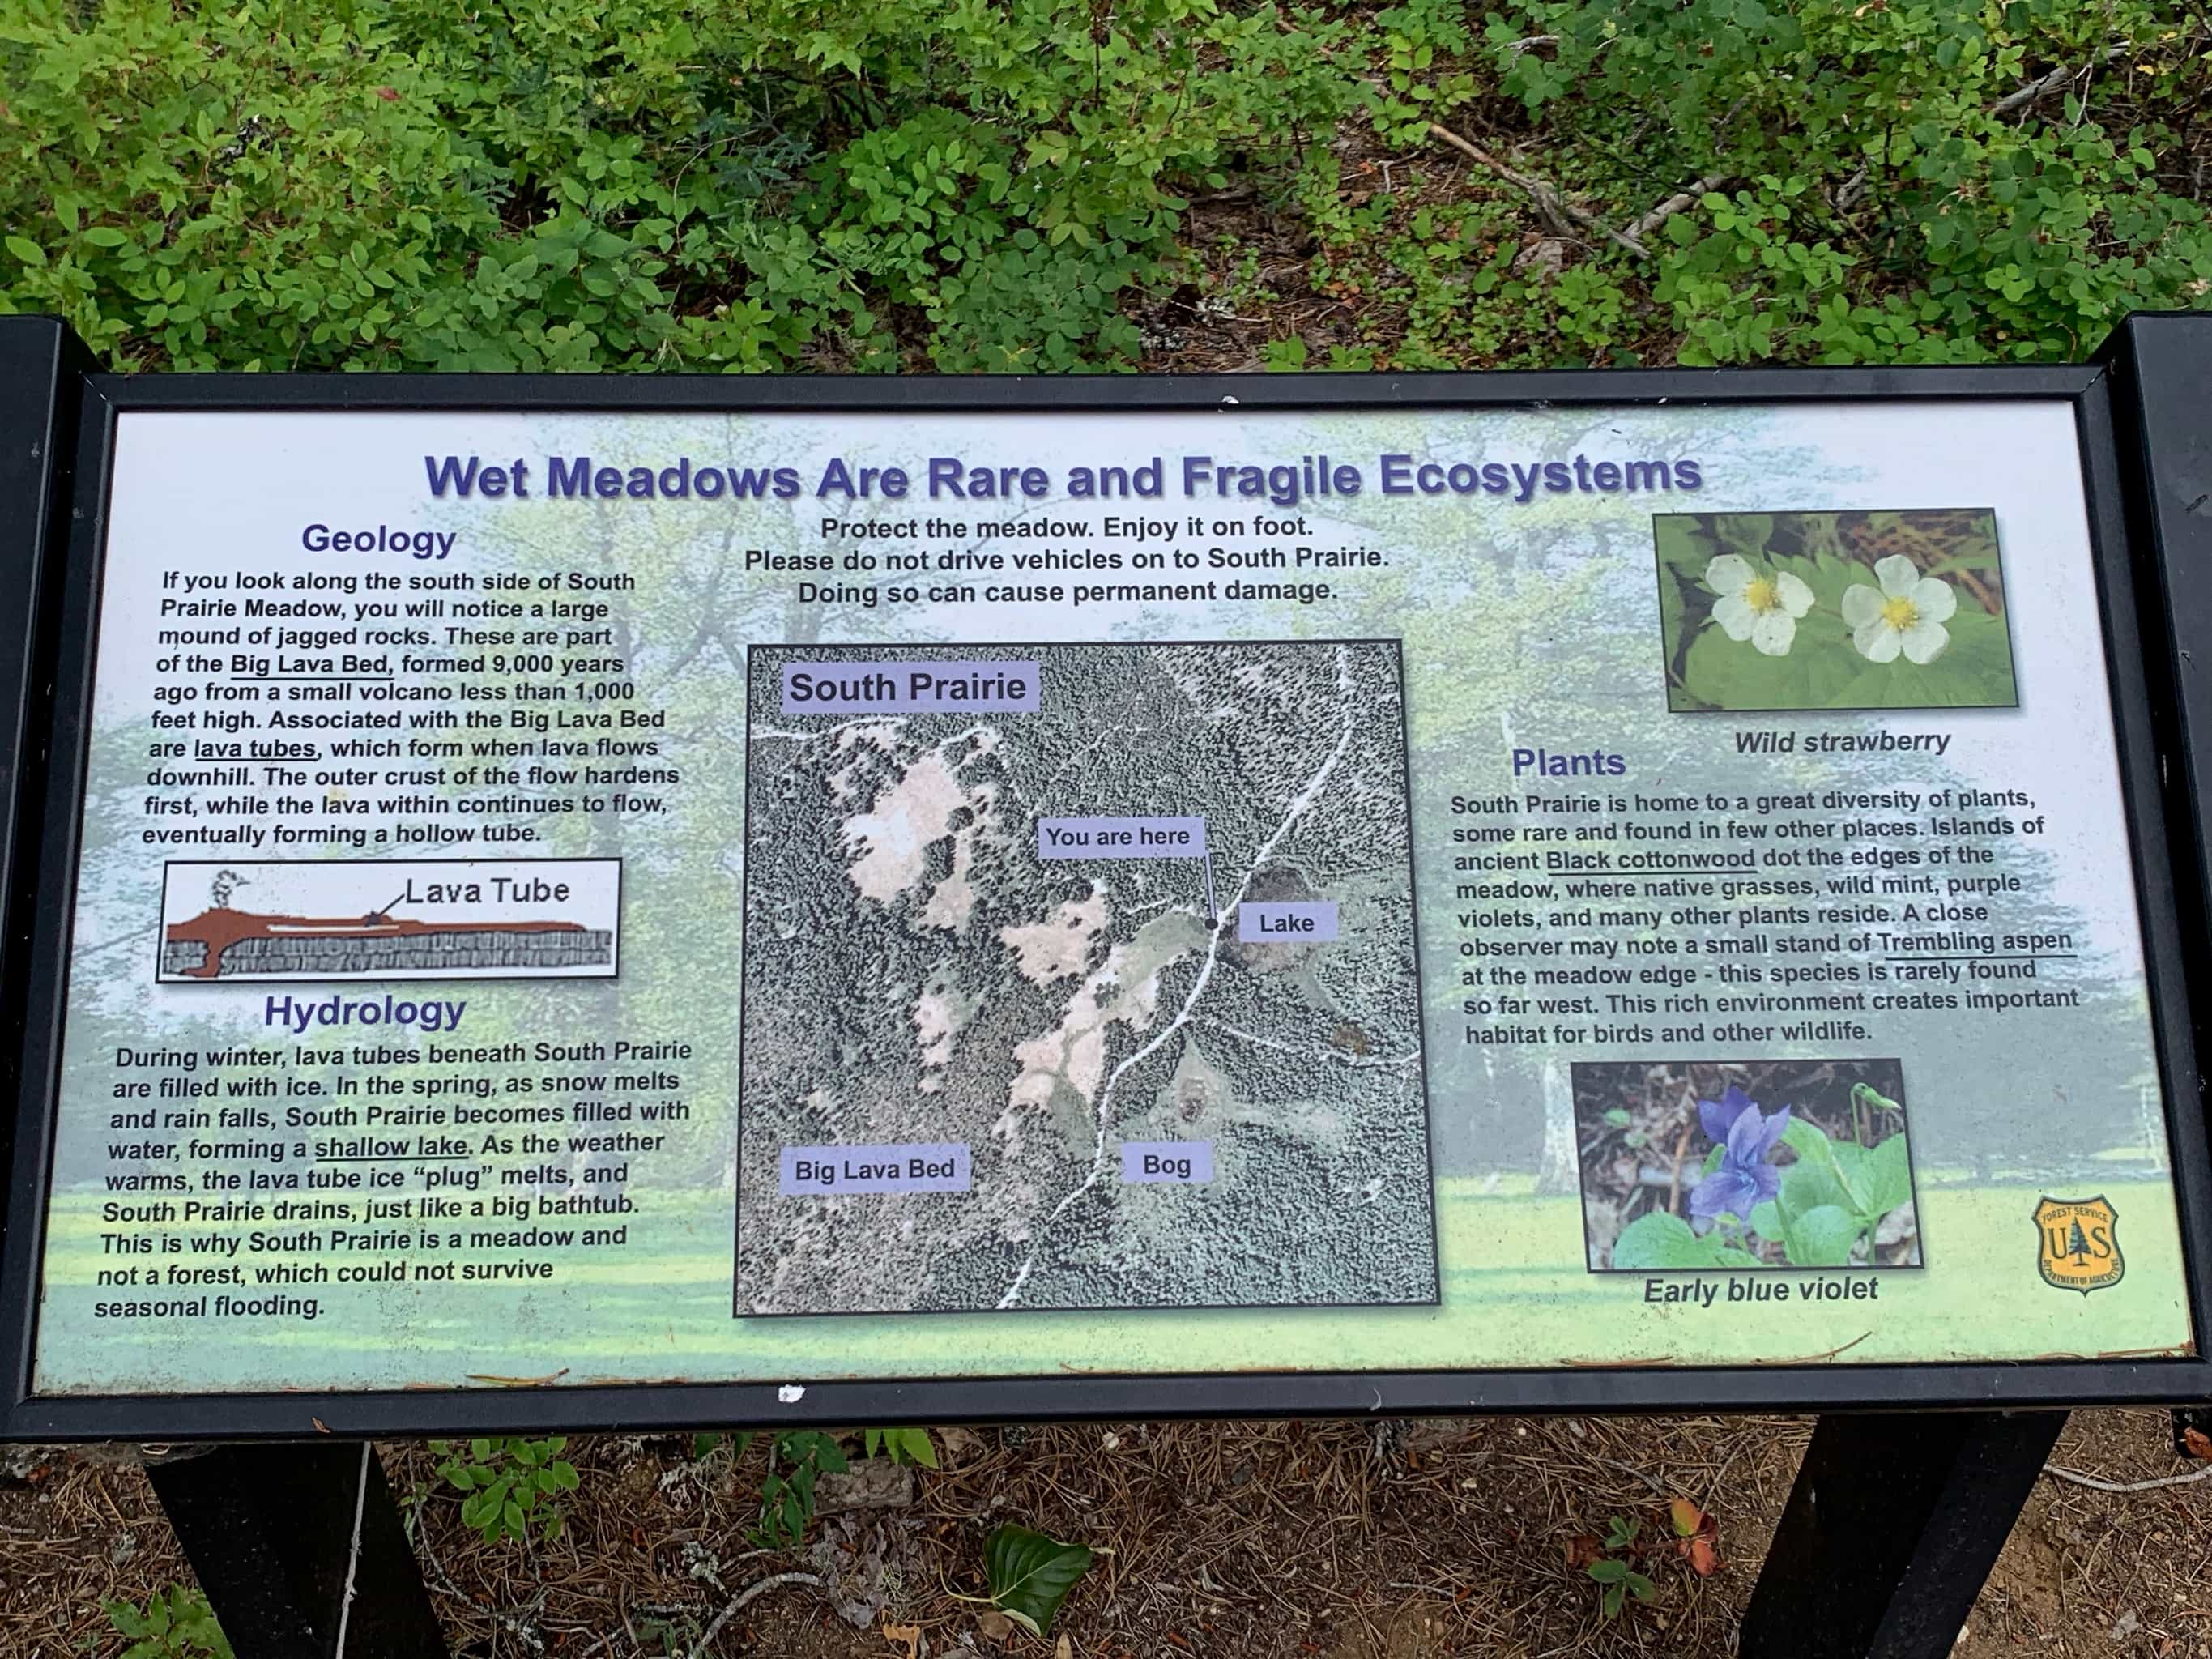 Information sign for South Prairie in Gifford Pinchot National Forest.